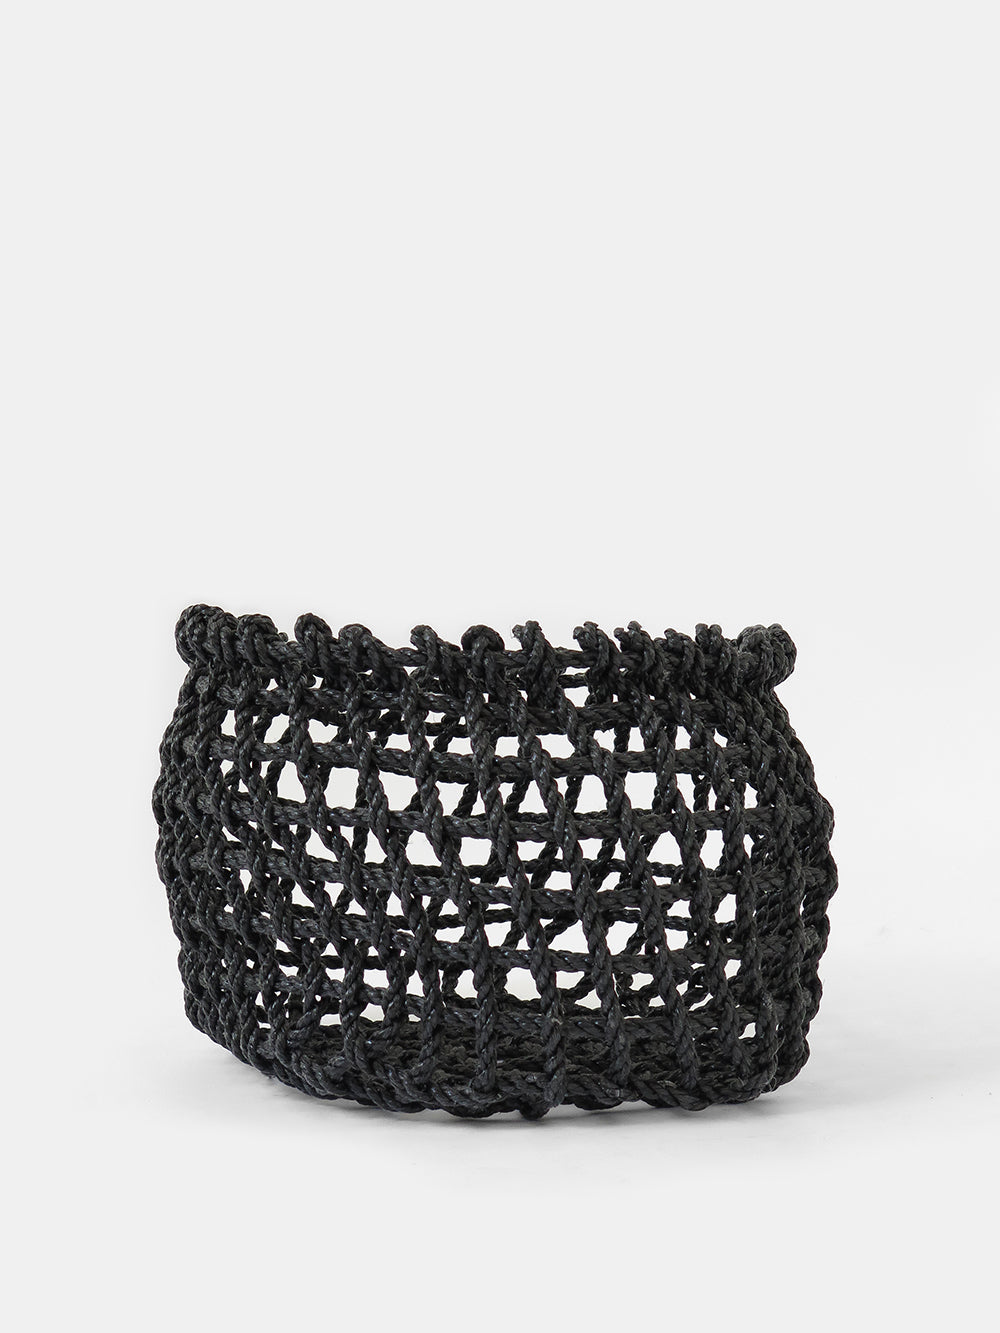 the rope co. short net basket in charcoal